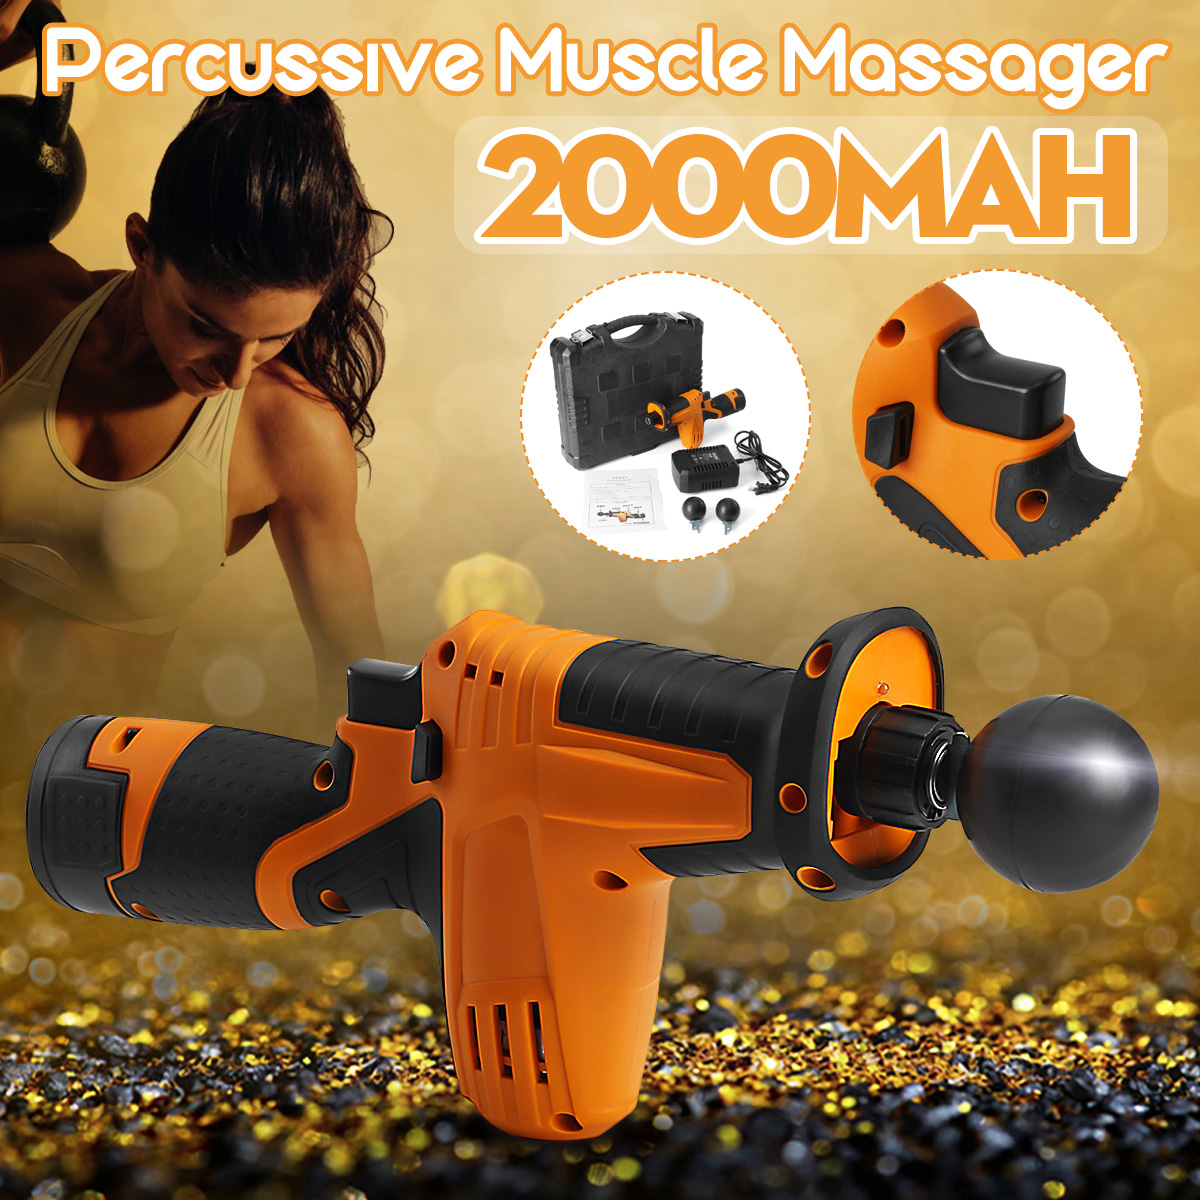 Professional Electric Deep Muscle Massage for Gun Relaxation Body Vibrating Massager Exercising Muscle Pain Relief Body SlimmingProfessional Electric Deep Muscle Massage for Gun Relaxation Body Vibrating Massager Exercising Muscle Pain Relief Body Slimming